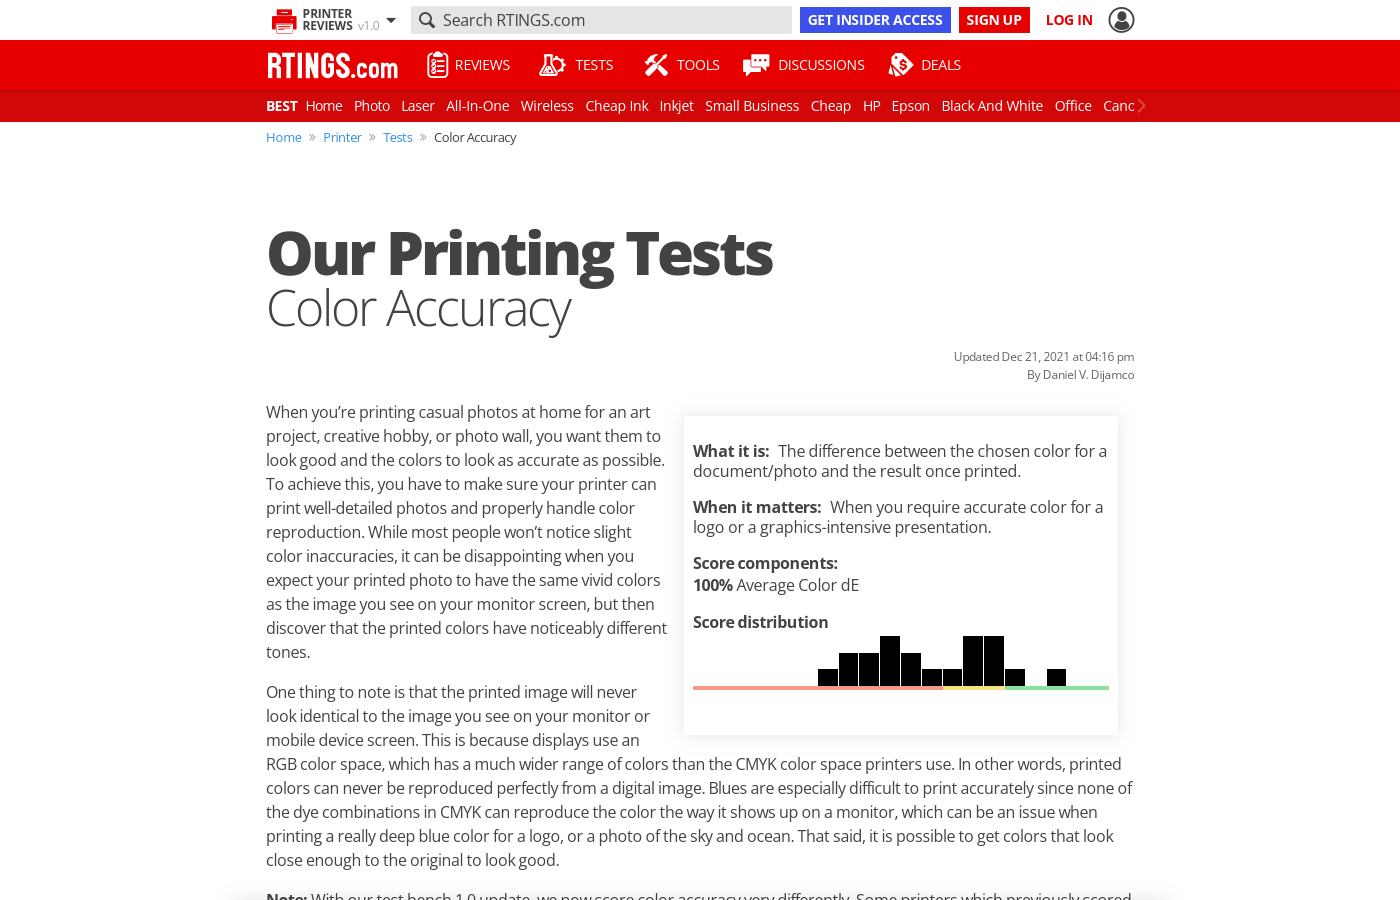 Our Tests: Color Accuracy